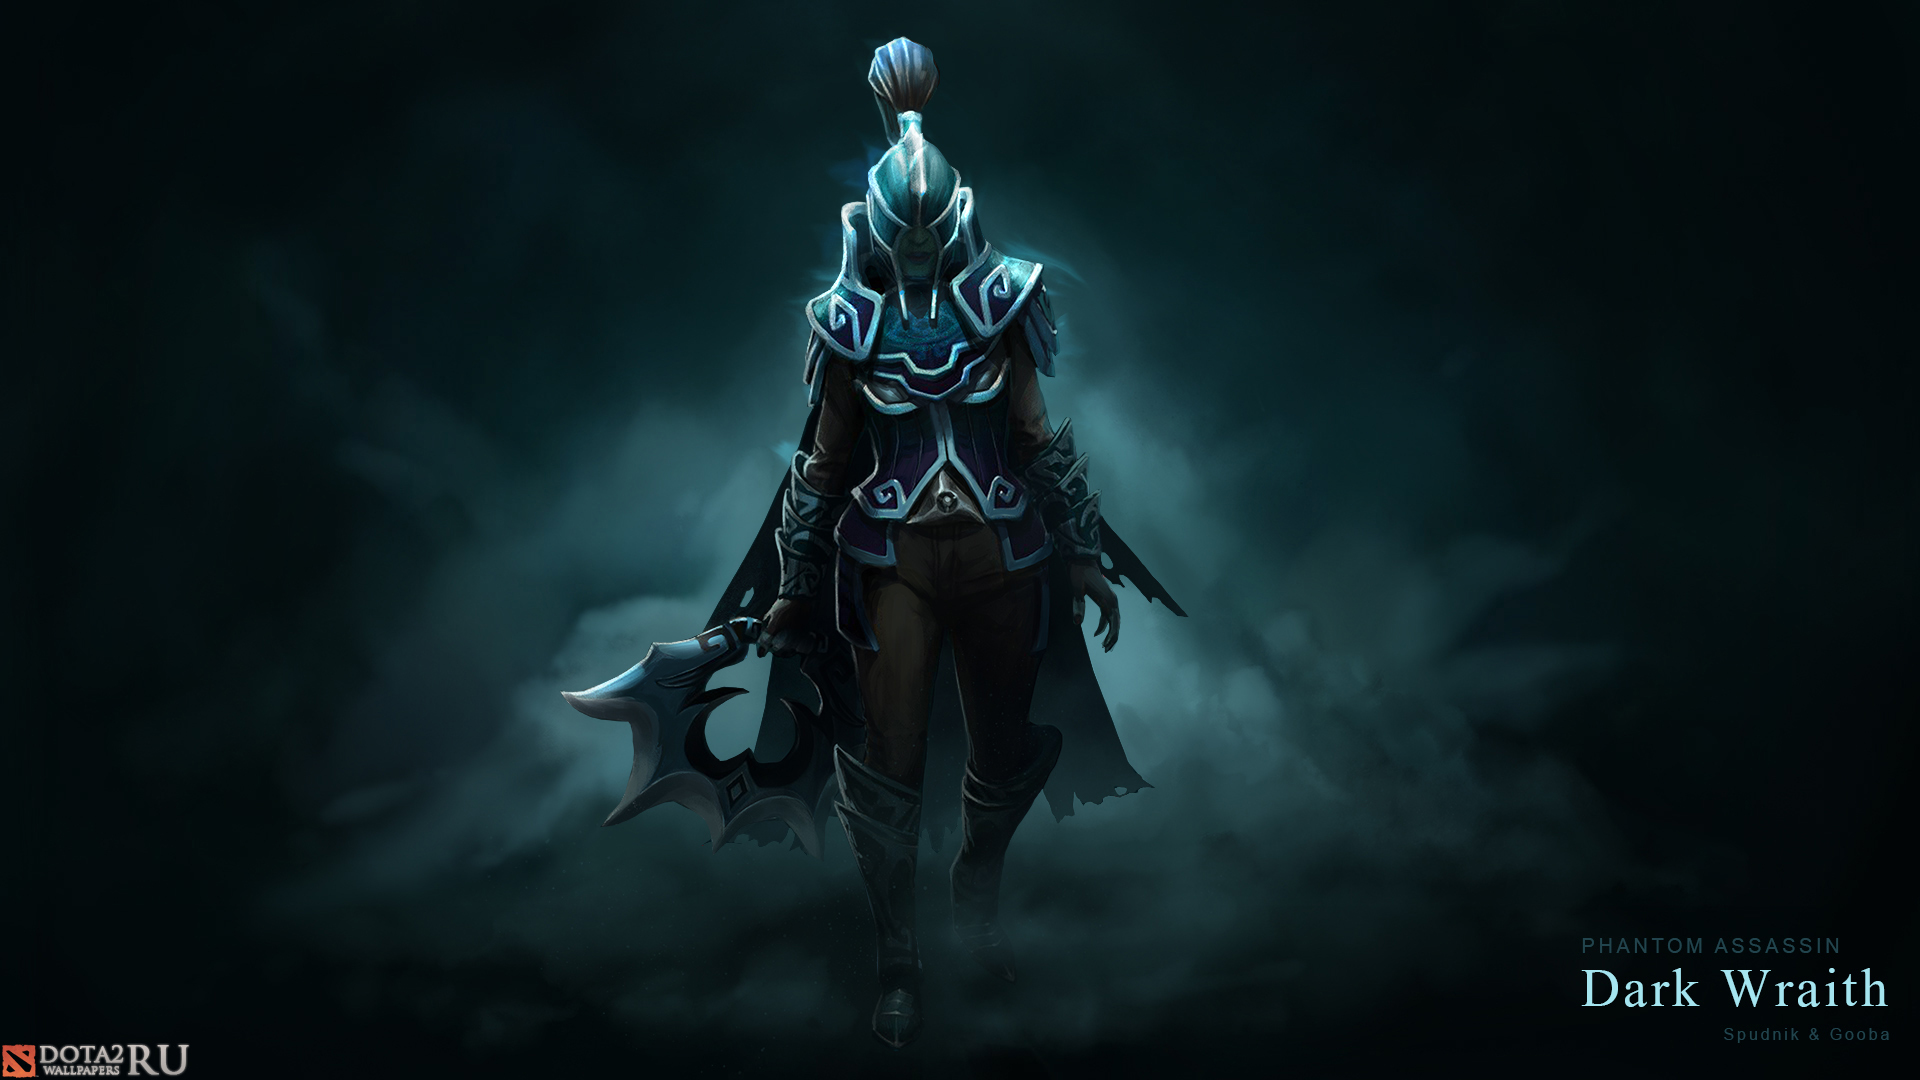 Tags dota wallpaper dota2 phantom assassin 1920x1080